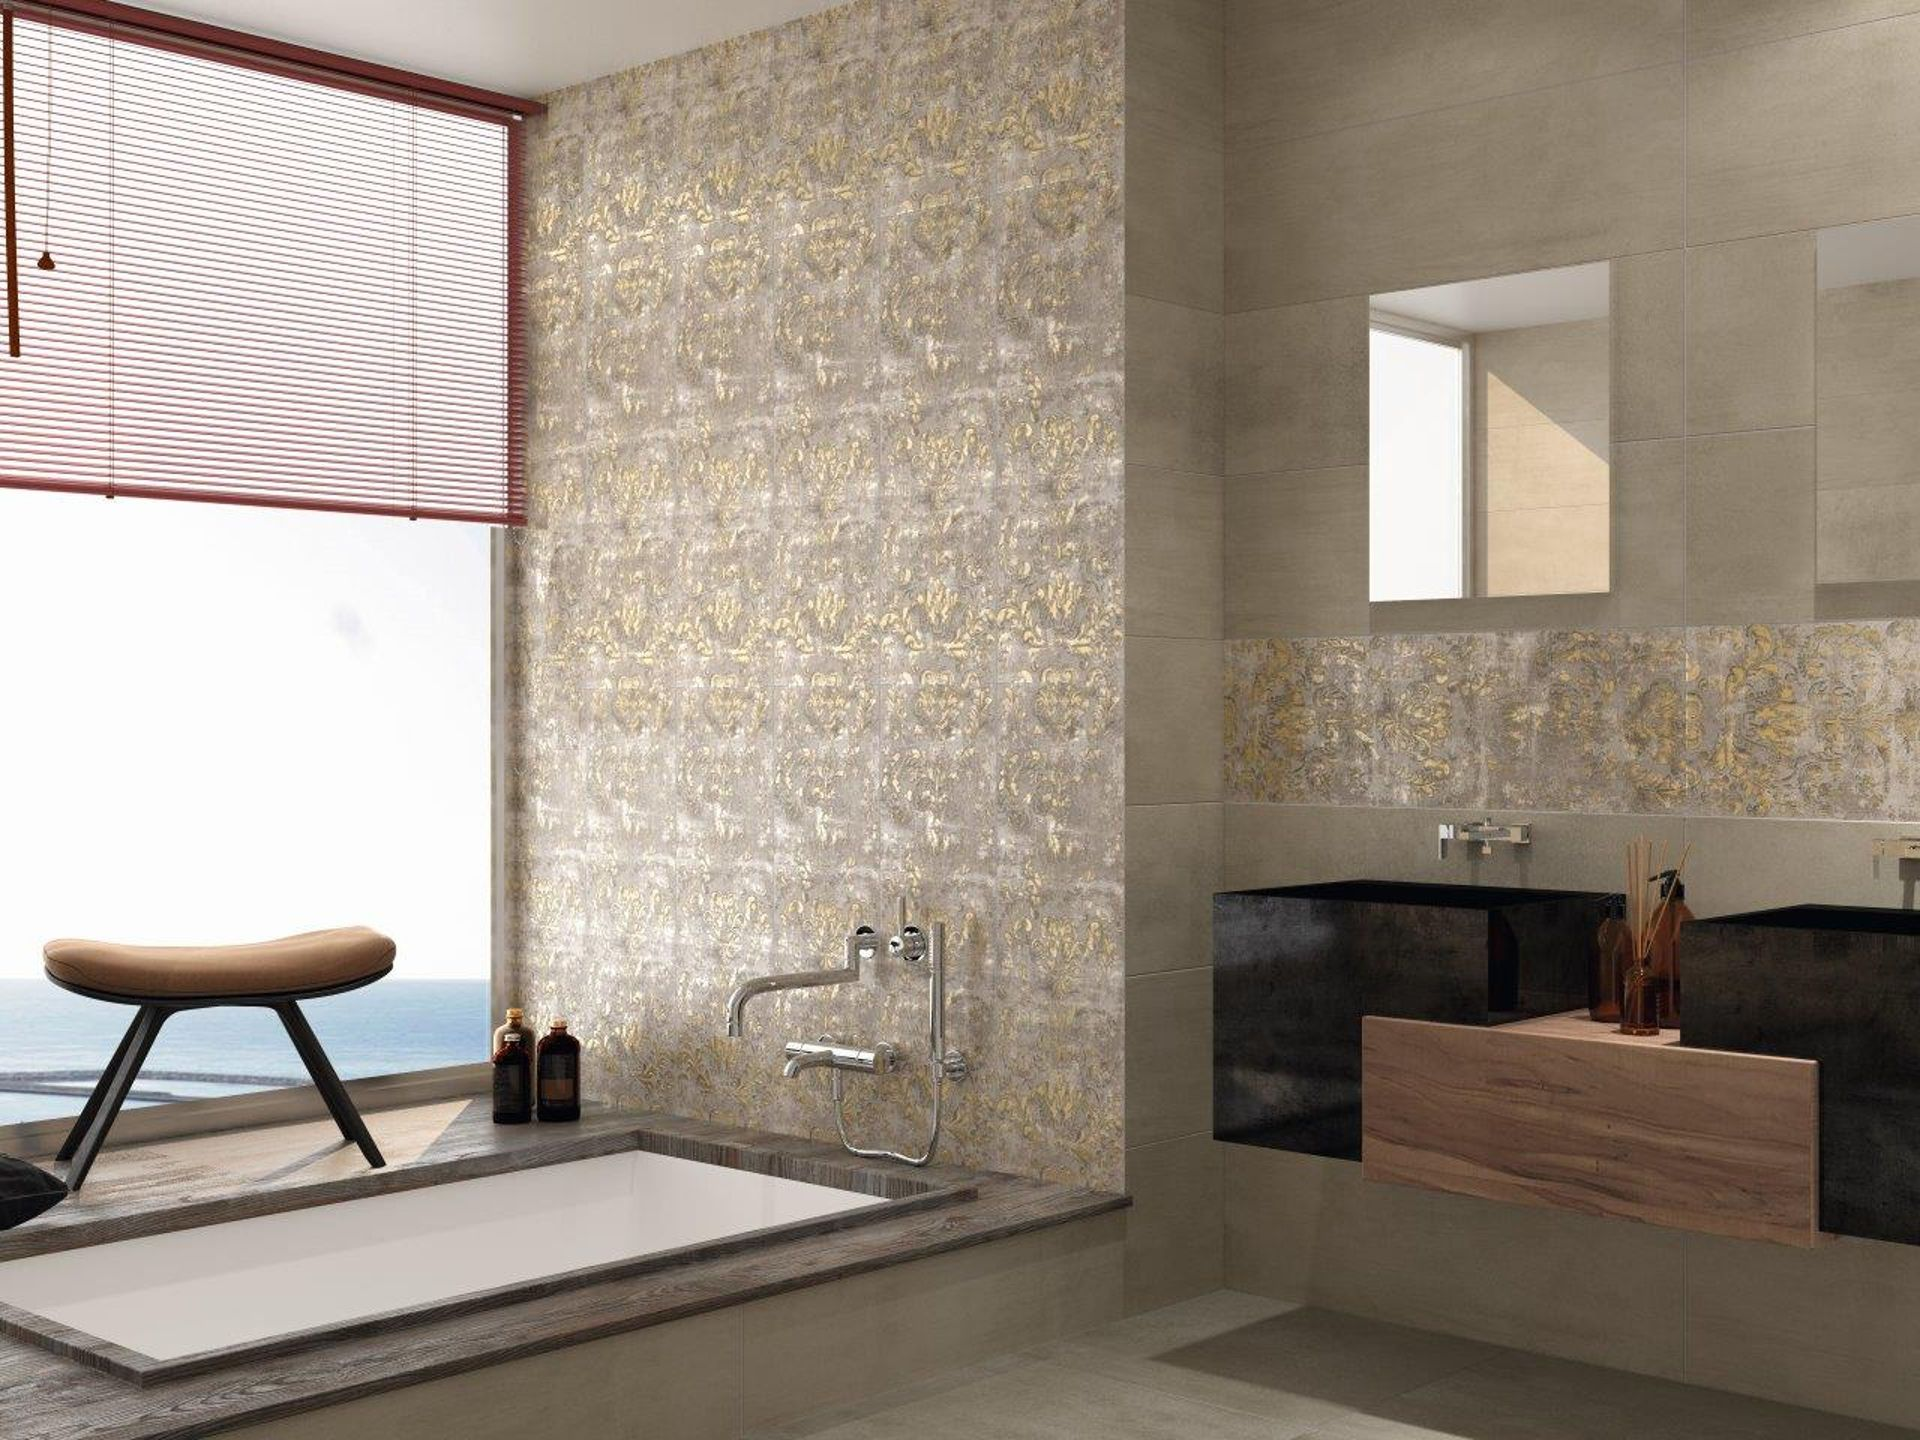 Our Latest Collection Of Ceramic Wall Tiles With A Beautiful Damask Pattern Design Distressed Look And Gold Metallic Luxury Tile Bathroom Wall Tile Wall Tiles